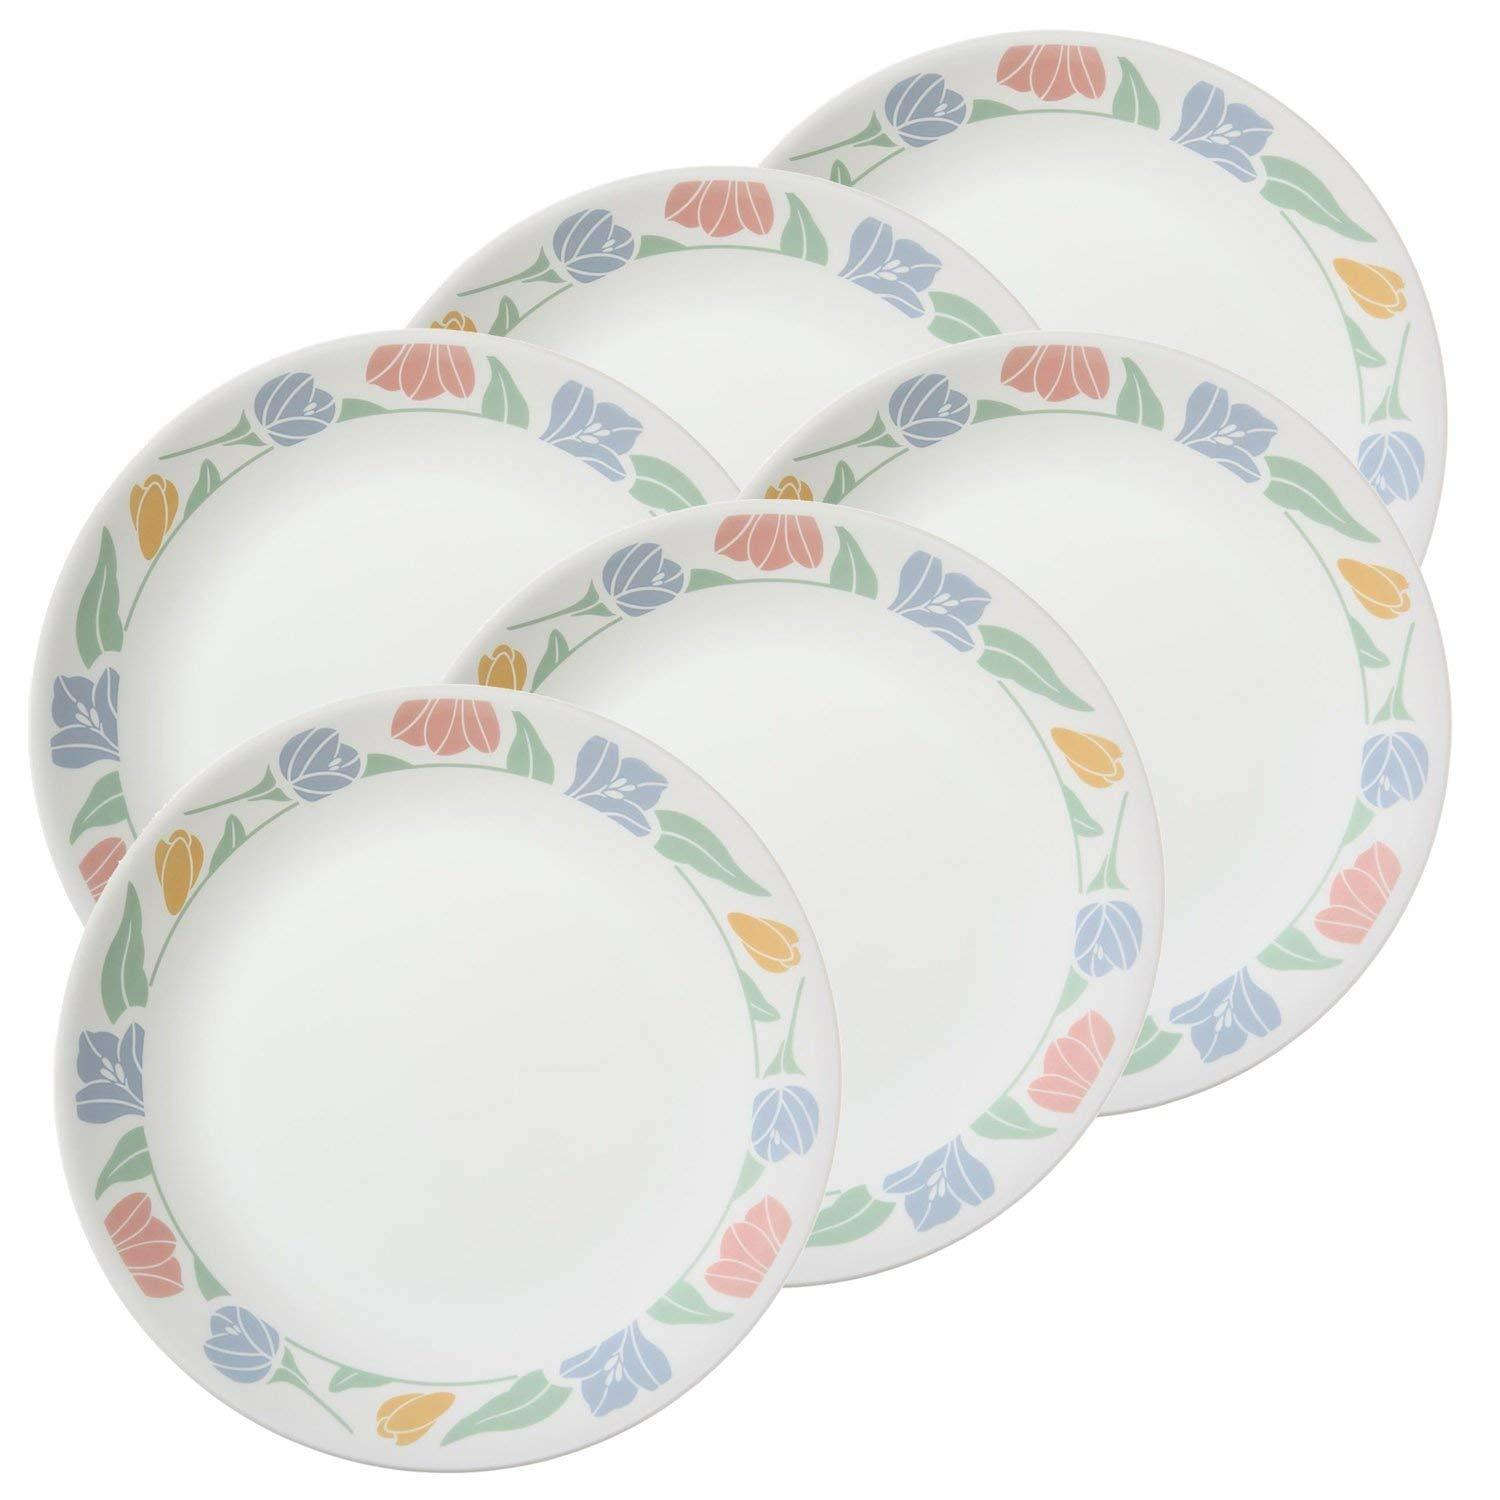 CORELLE FRIEND SHIP SMALL PLATE